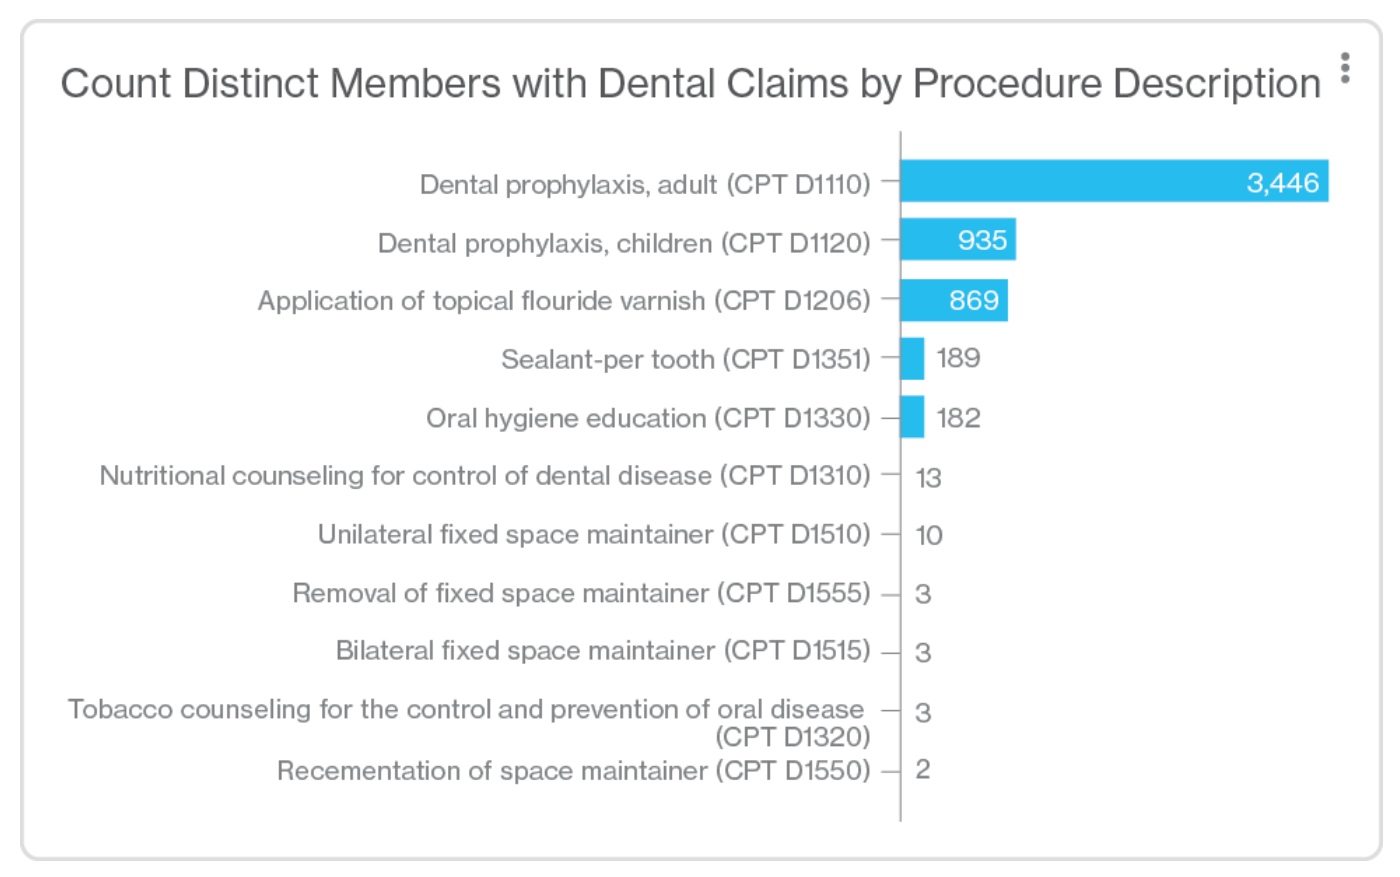 Chart showing dental claims by procedure.